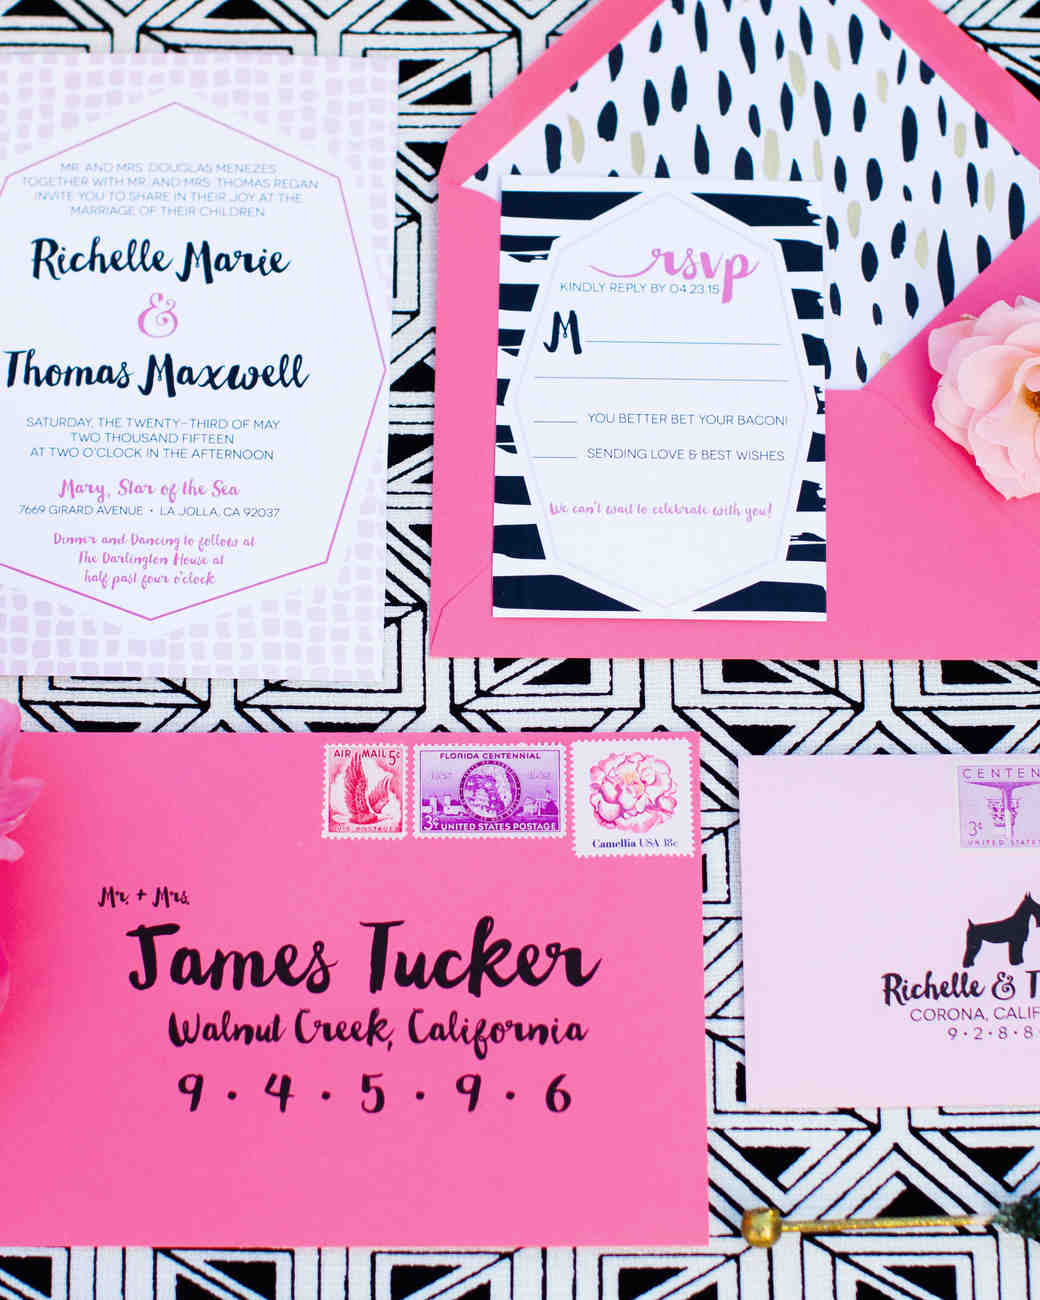 richelle-tom-wedding-stationery-669bw-s112855-0416.jpg